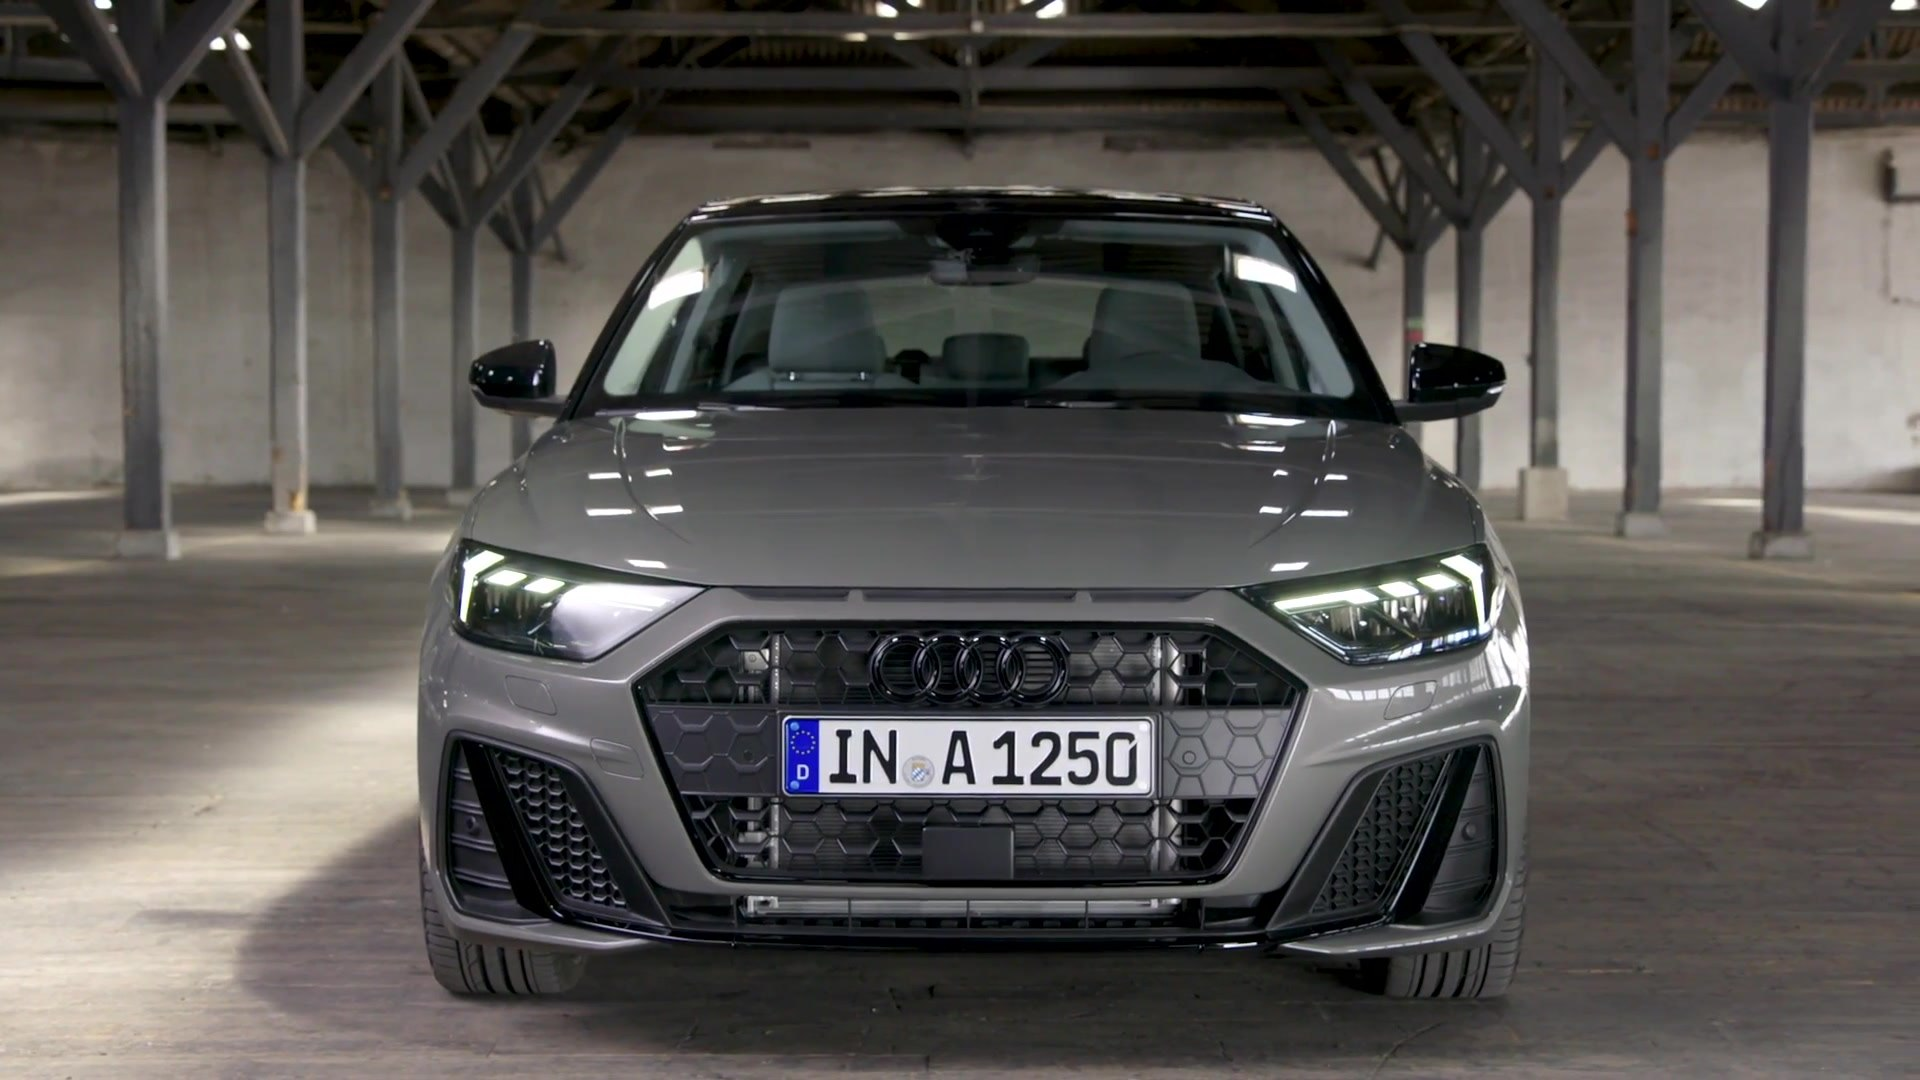 The New Audi A1 Sportback Exterior Design In Chronos Grey Video Dailymotion